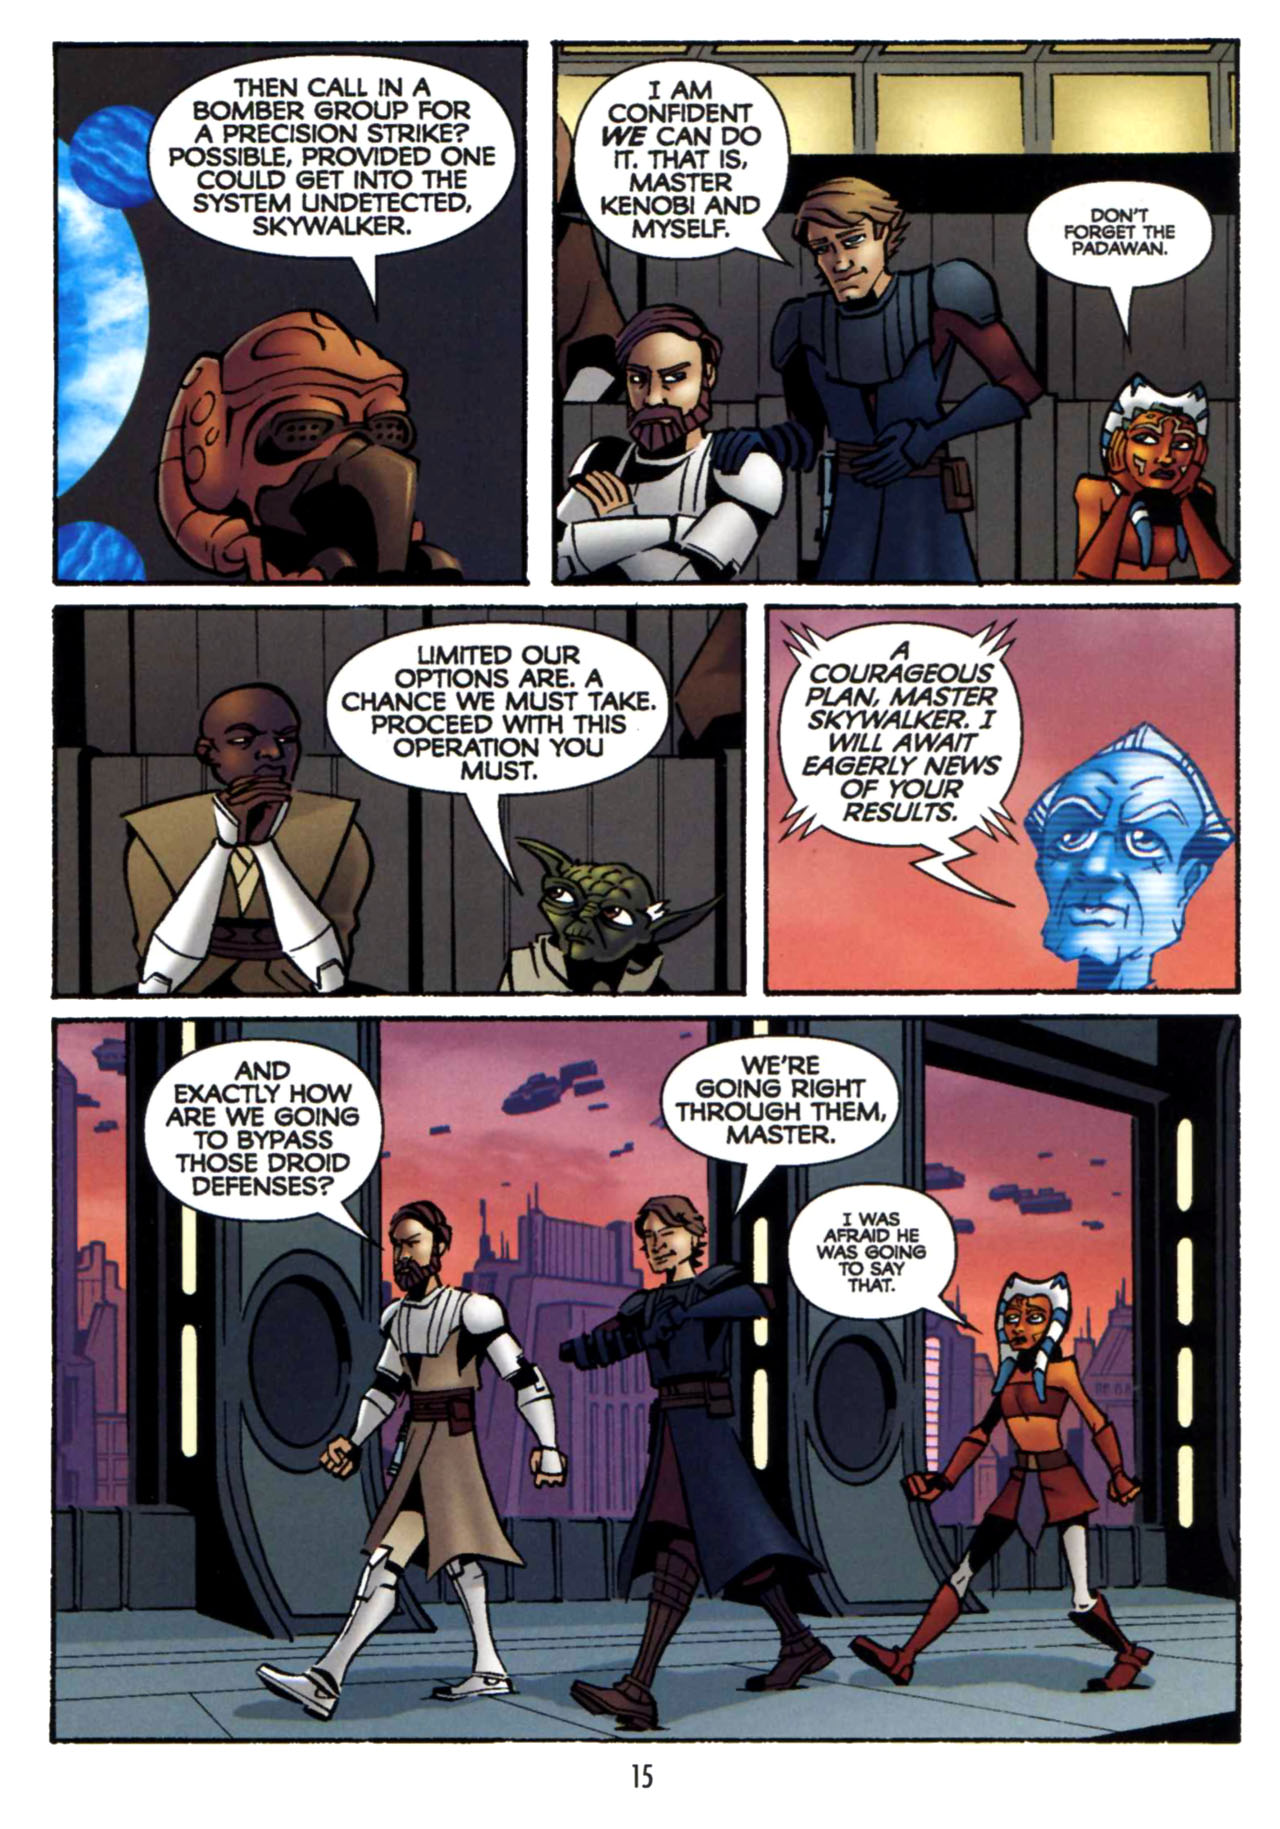 Read online Star Wars: The Clone Wars - Shipyards of Doom comic -  Issue # Full - 14